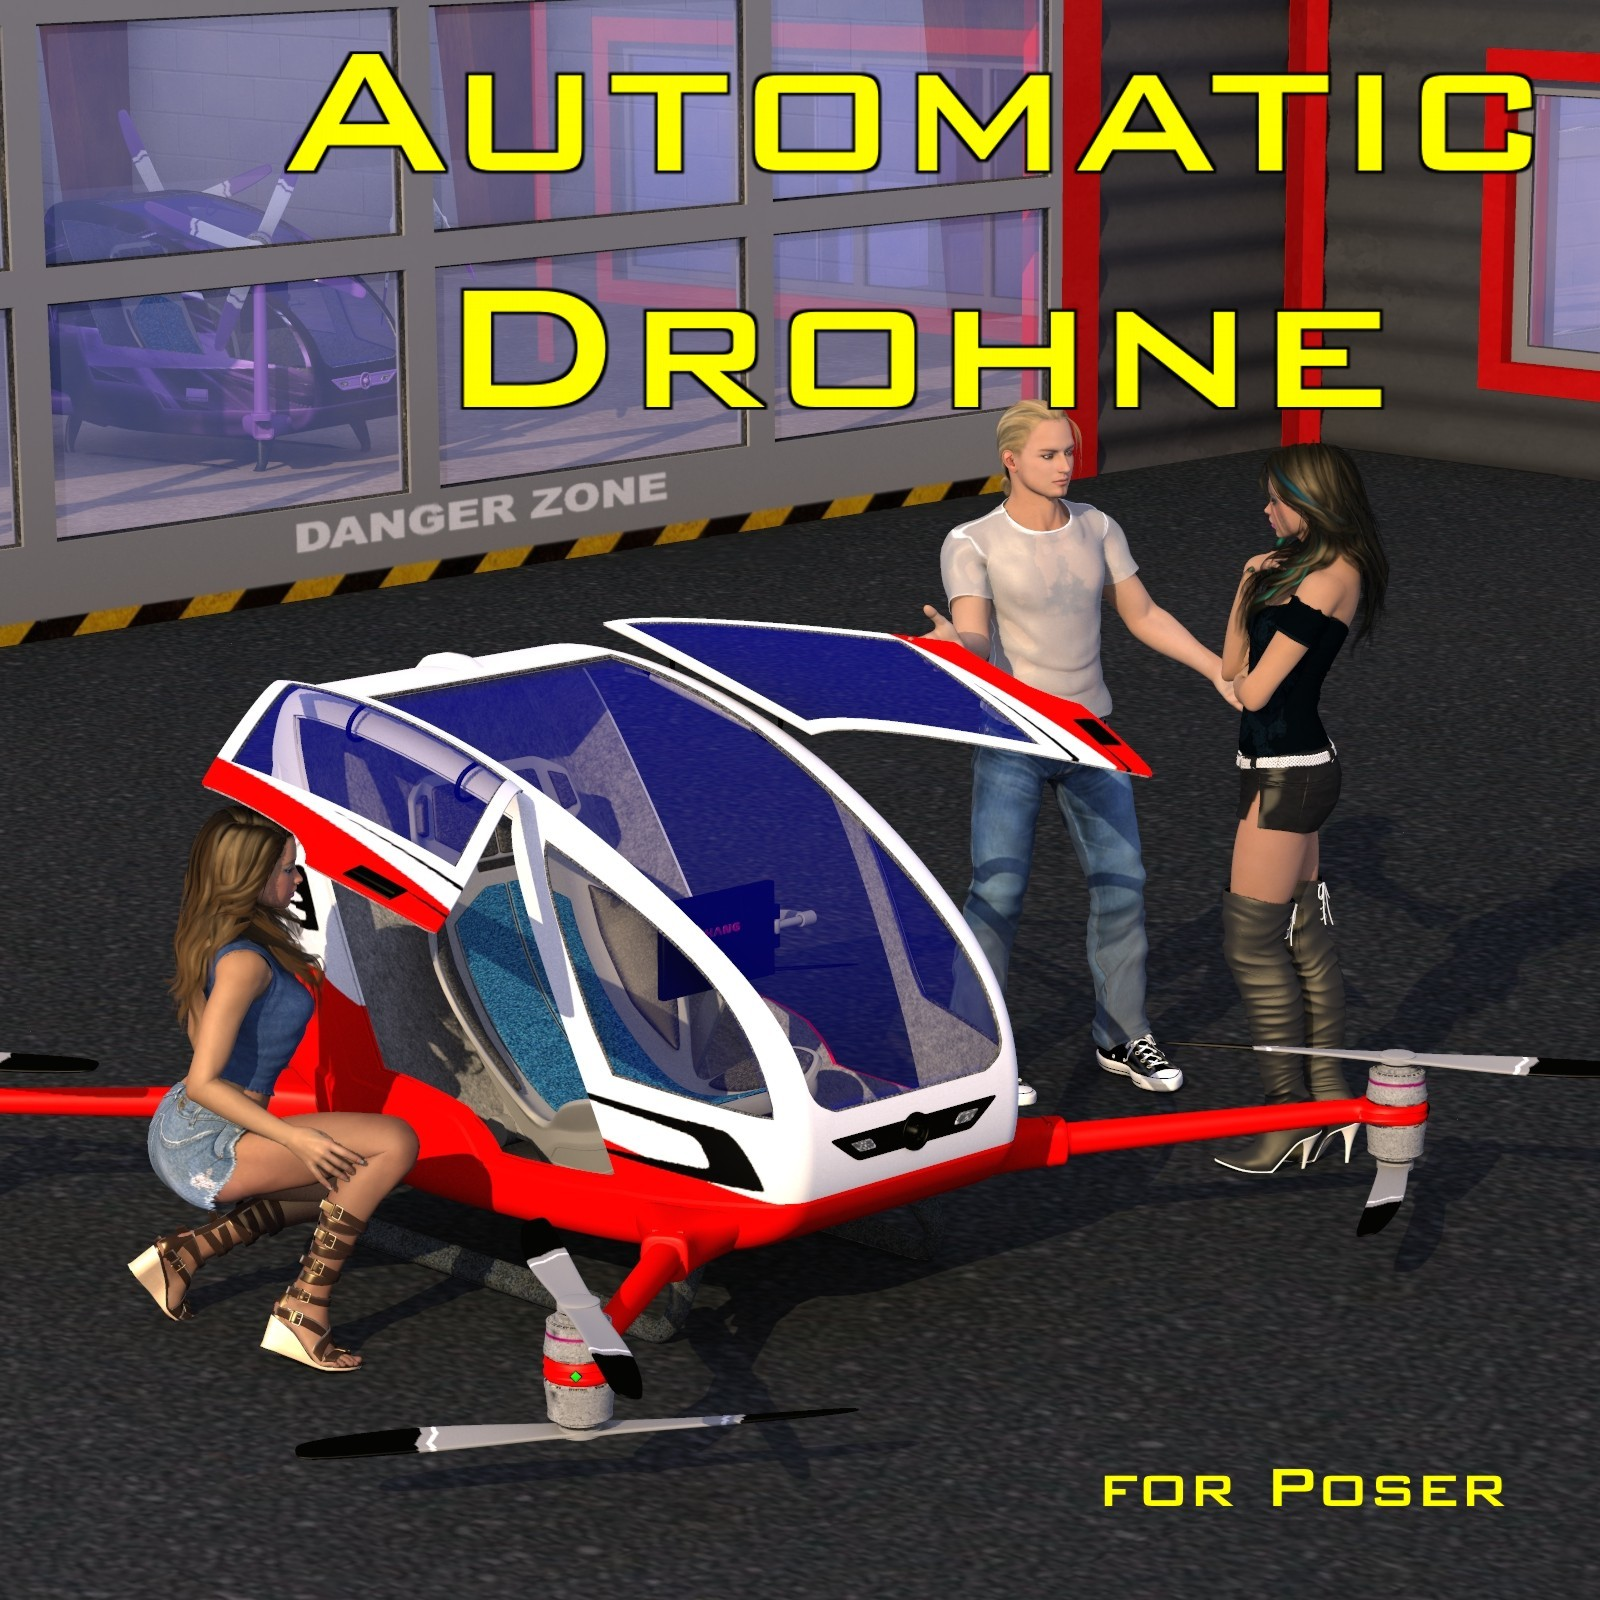 Automatic Drohne by mausel